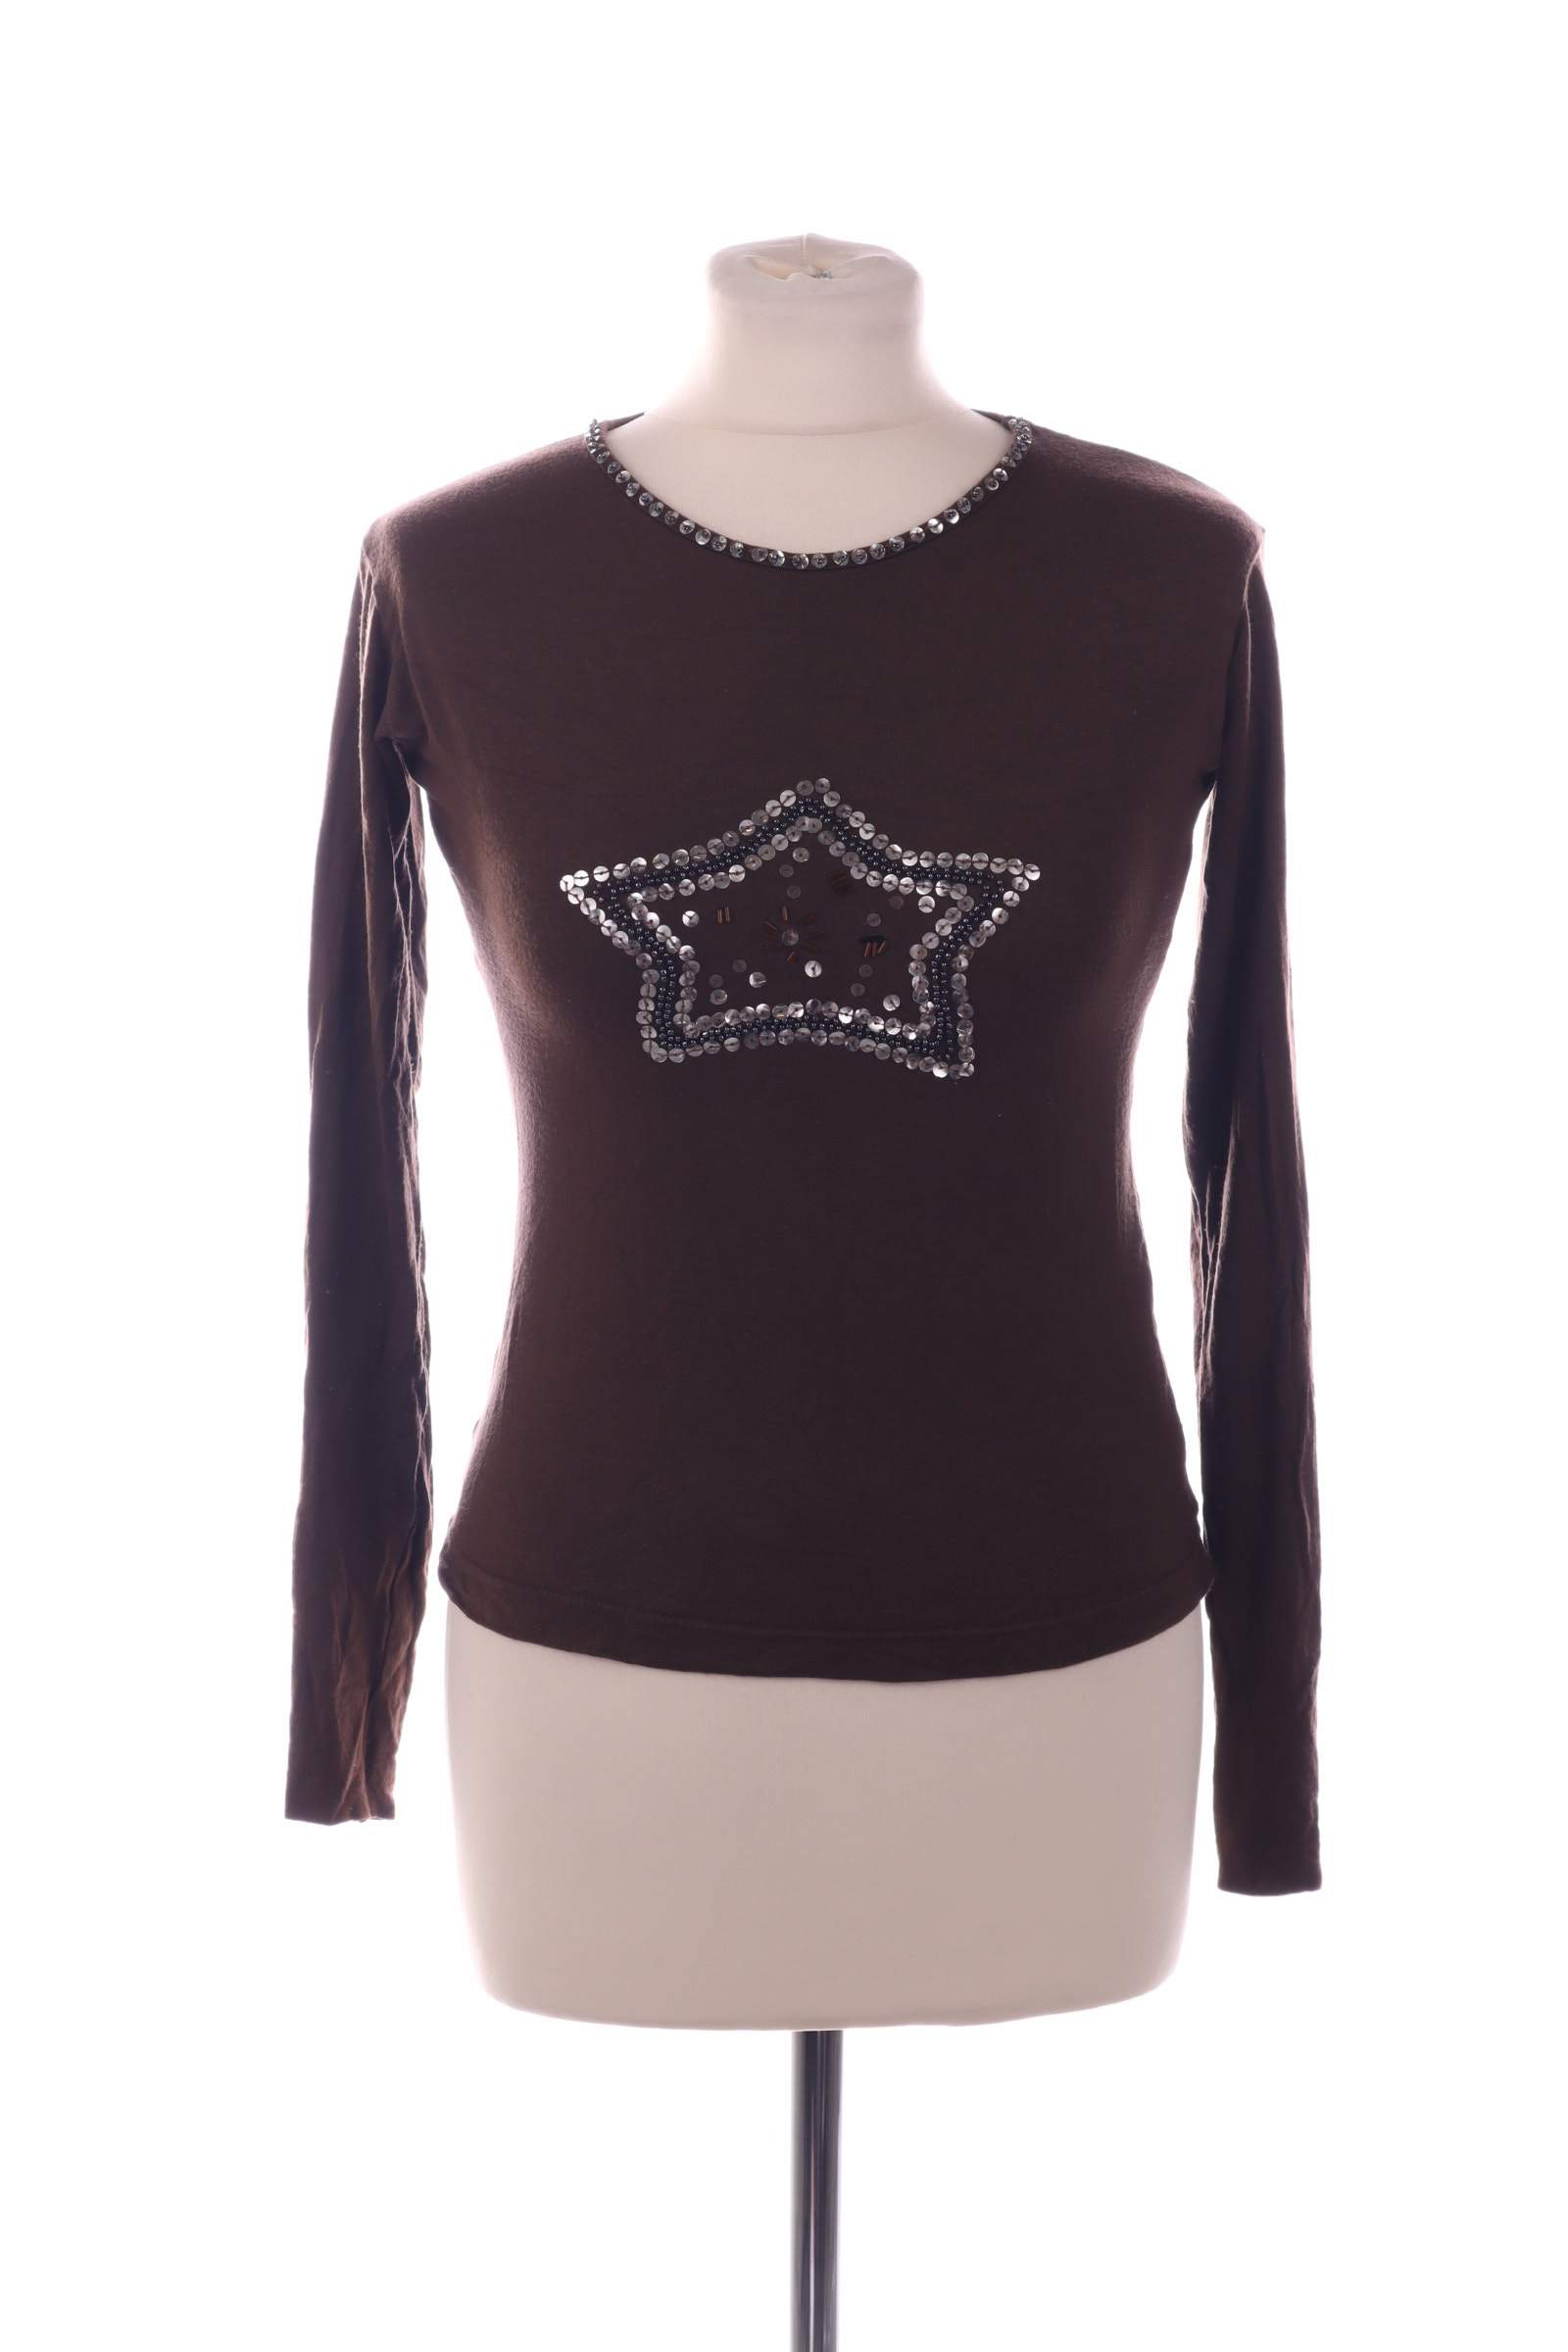 clothing co Brown Top